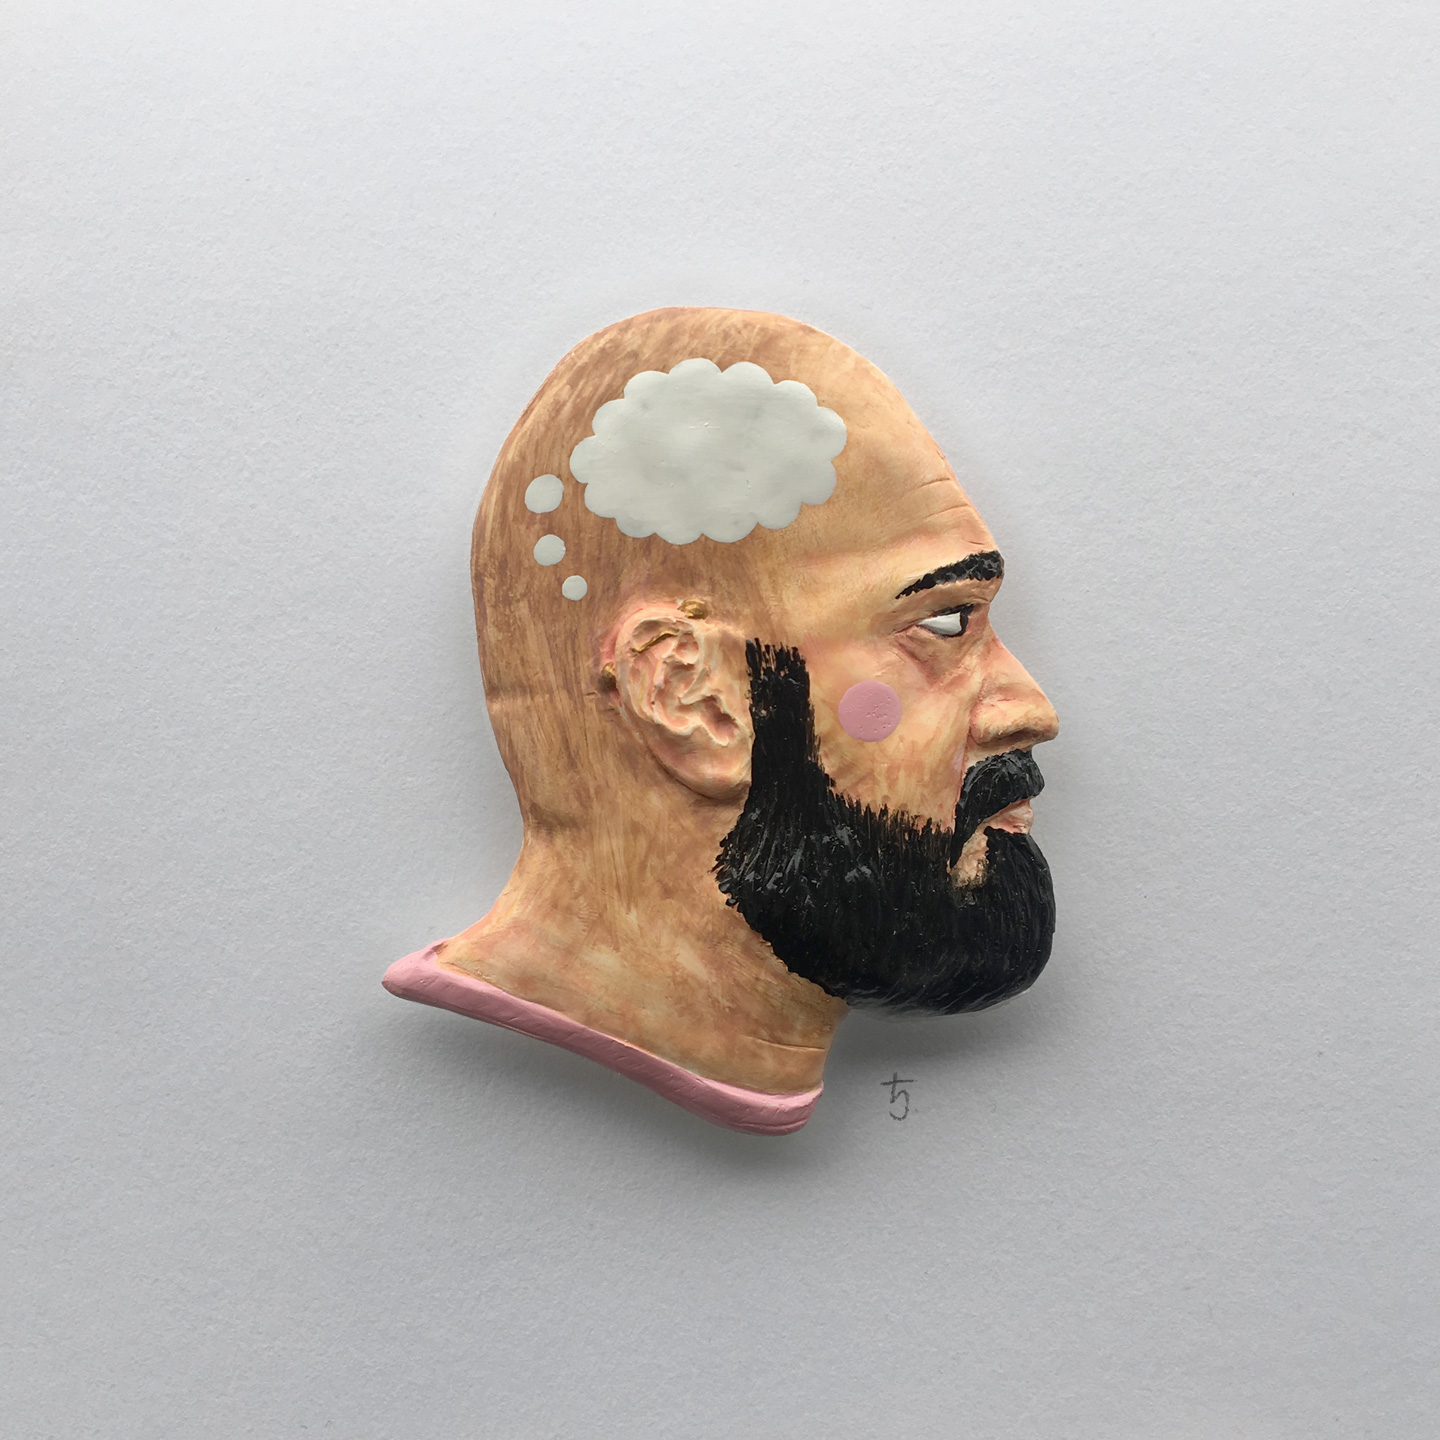 art_andre_levy_zhion_recovered_self_portrait_beard_thought_empty.jpg